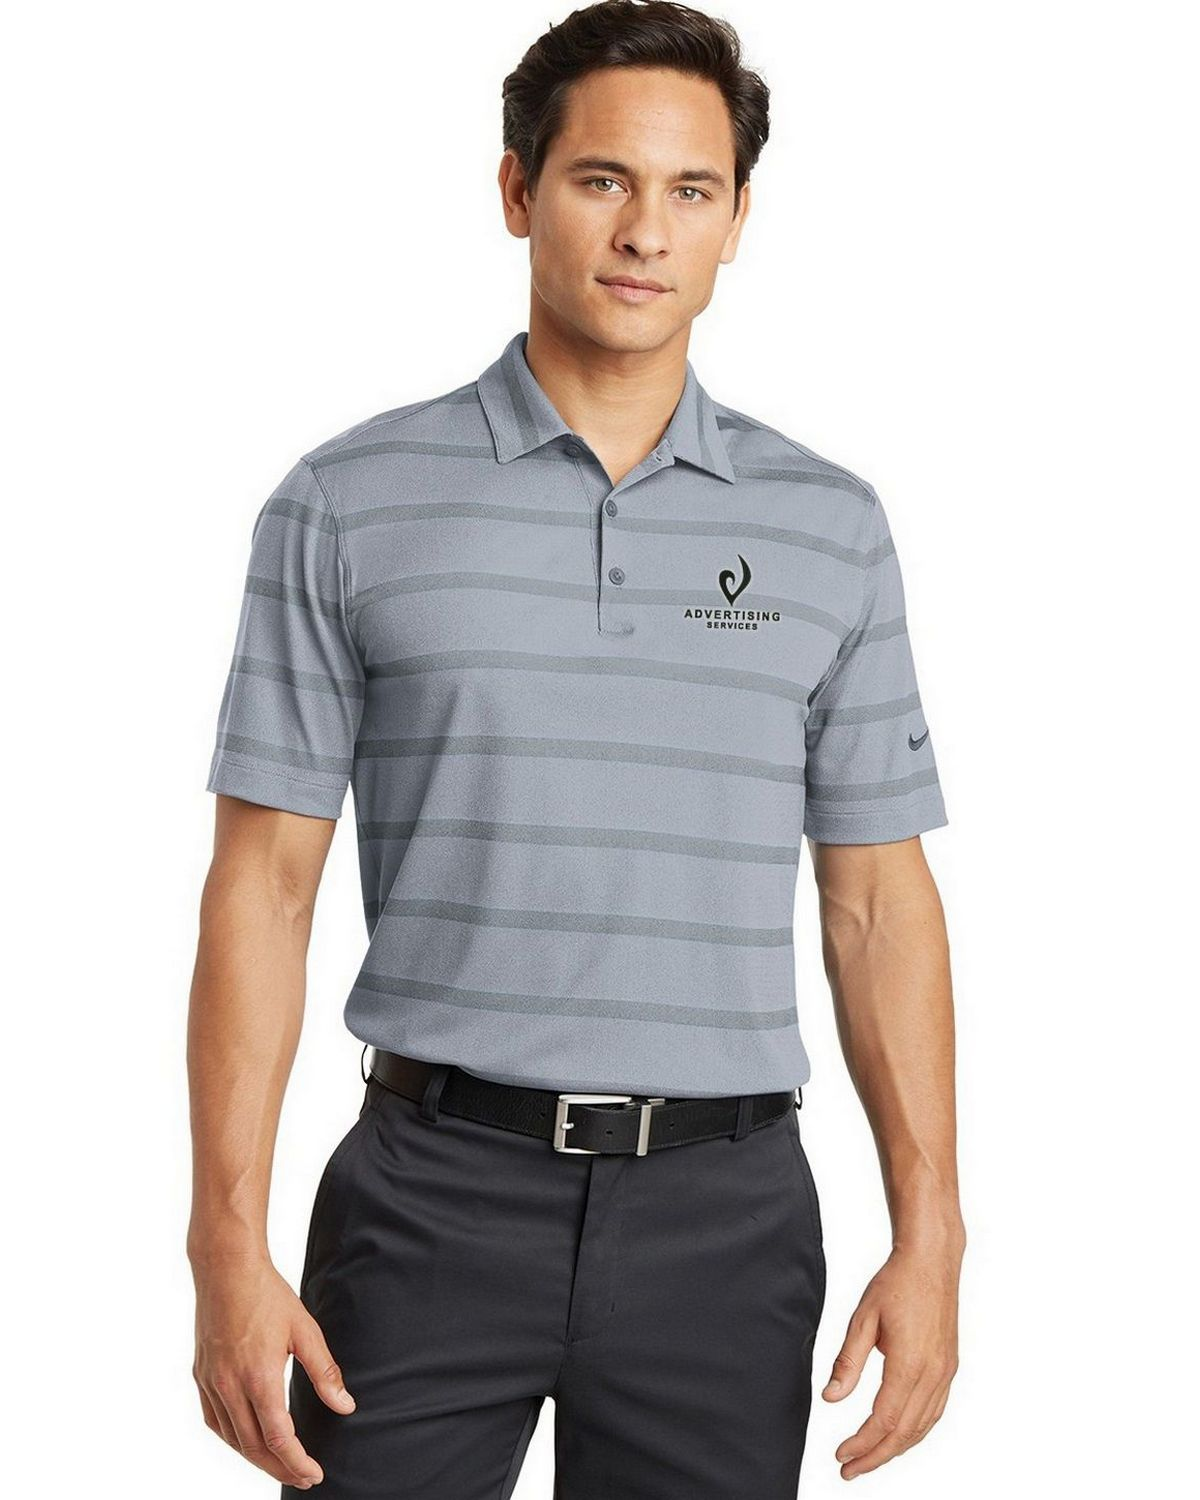 Nike golf dri fit logo embroidered polo size chart for Nike dri fit embroidered shirts